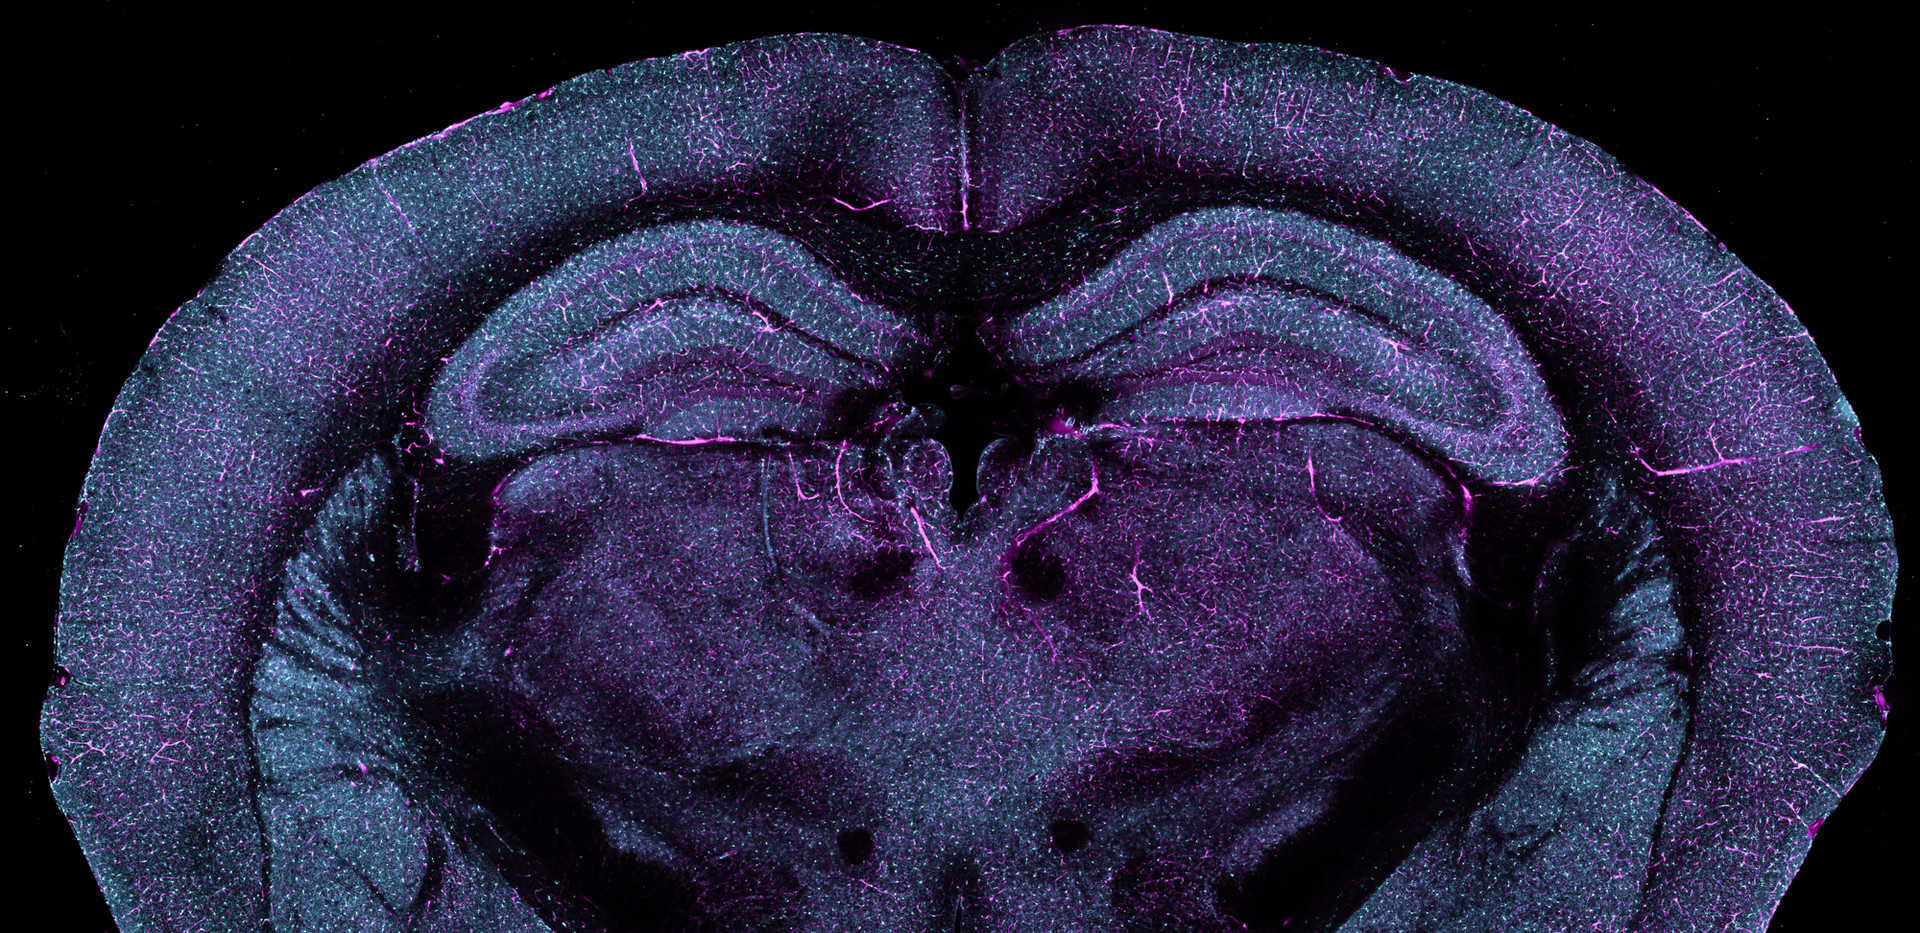 Species: Mouse Tissue: Brain Fluorophore: GFP (Cyan) Fluorophore: Rhodamine-B (Magenta)